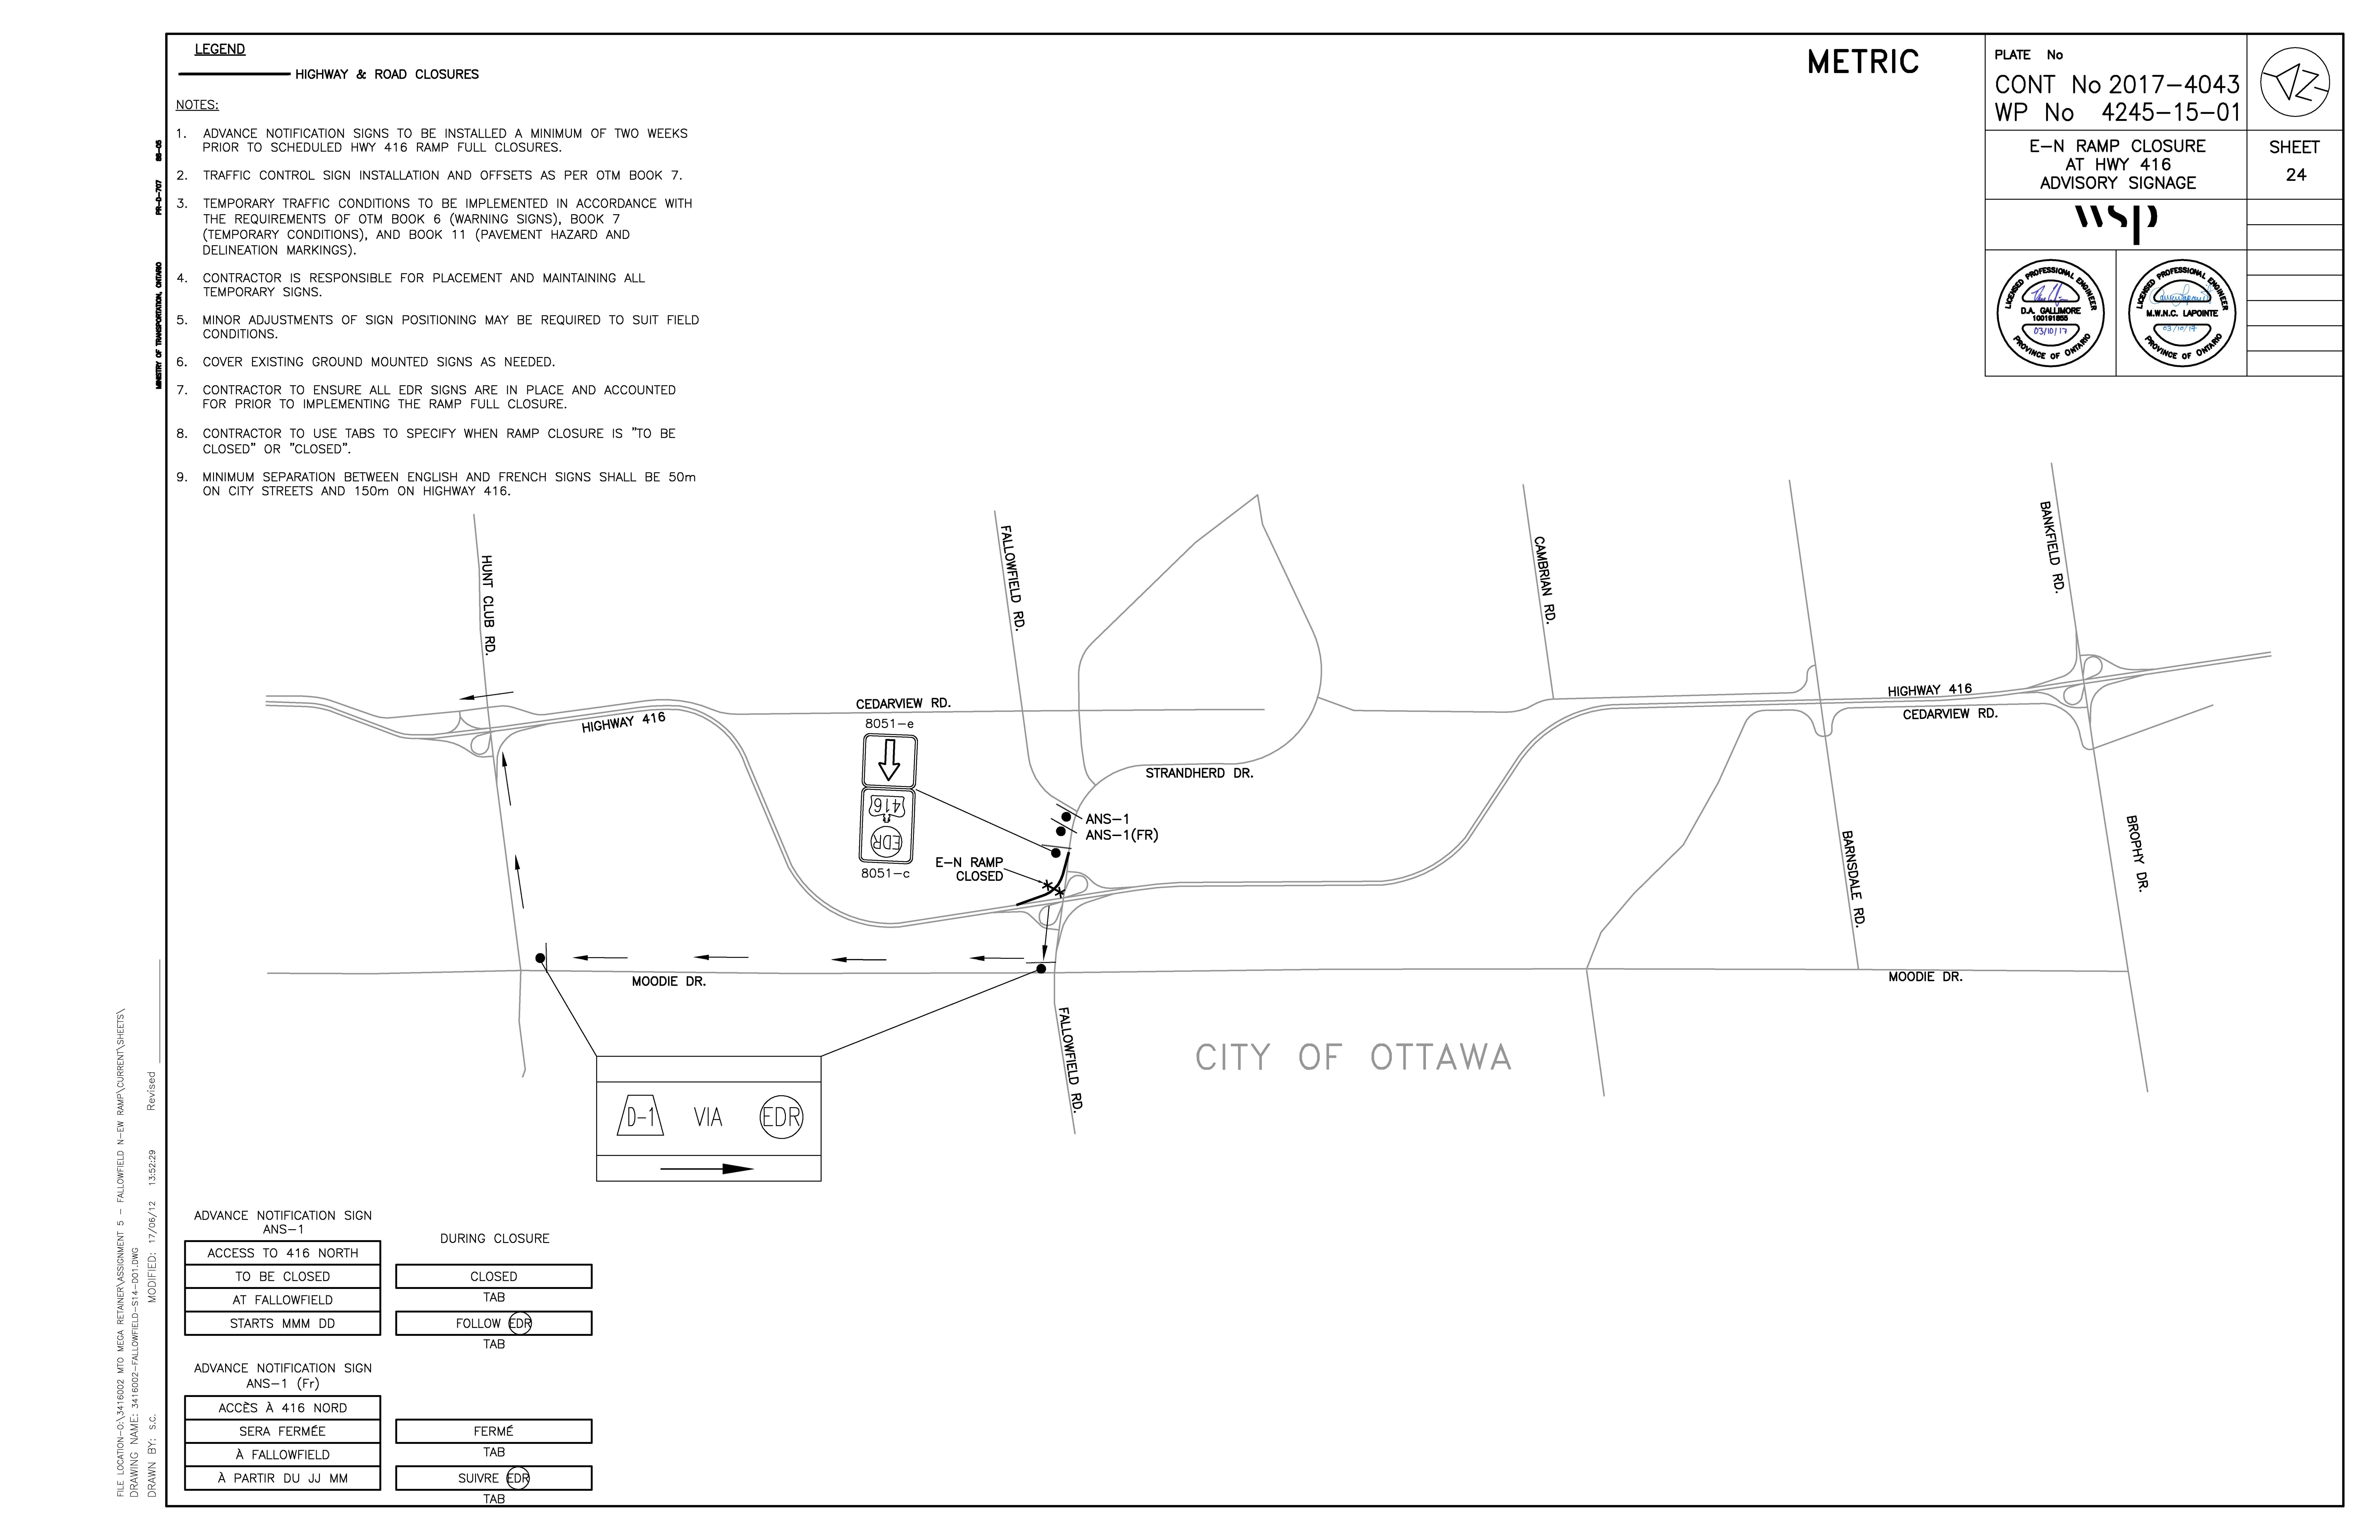 Construction Projects 2018 Rideau Goulbourn Councillor Scott Management Diagram Road Works 4way Portable Traffic Lights Culvert Replacement